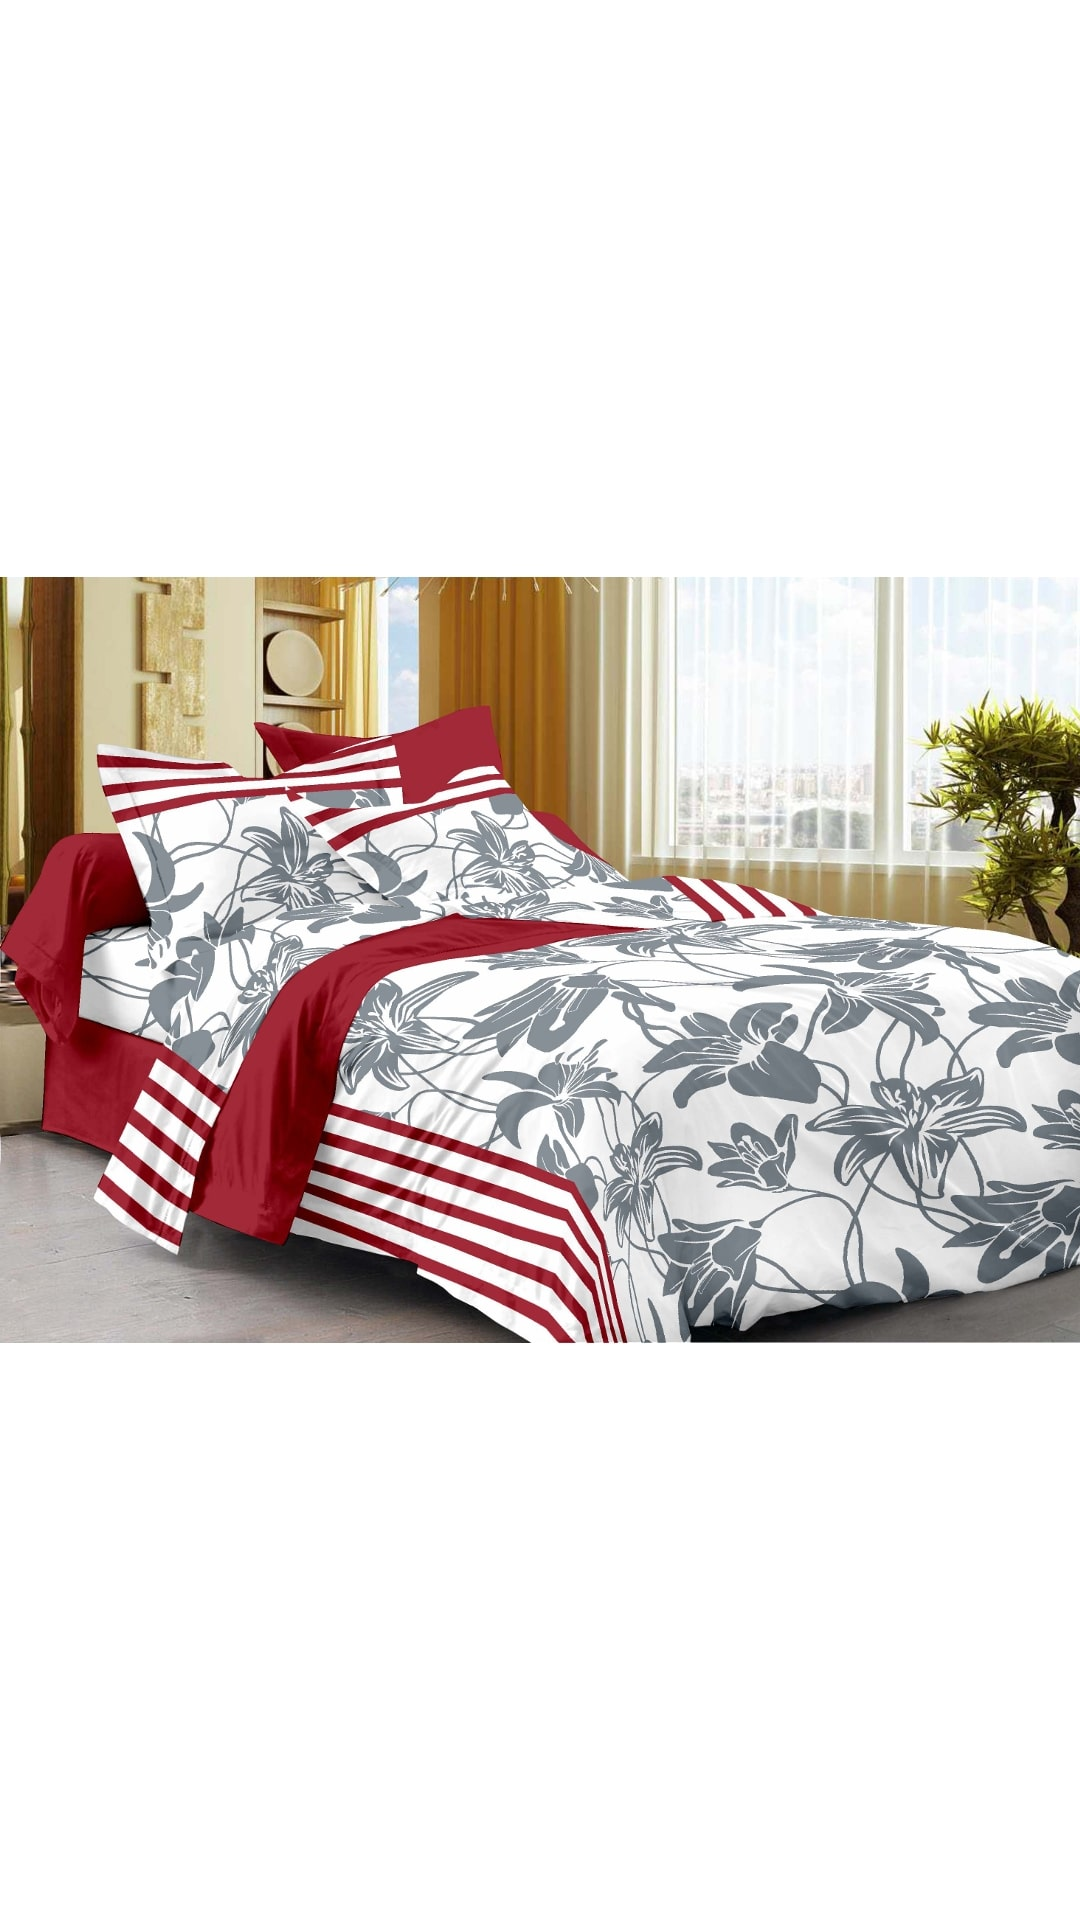 Story@Home Cotton Floral Single Size Bedsheet 208 TC   1 Bedsheet With 1 Pillow Covers , White